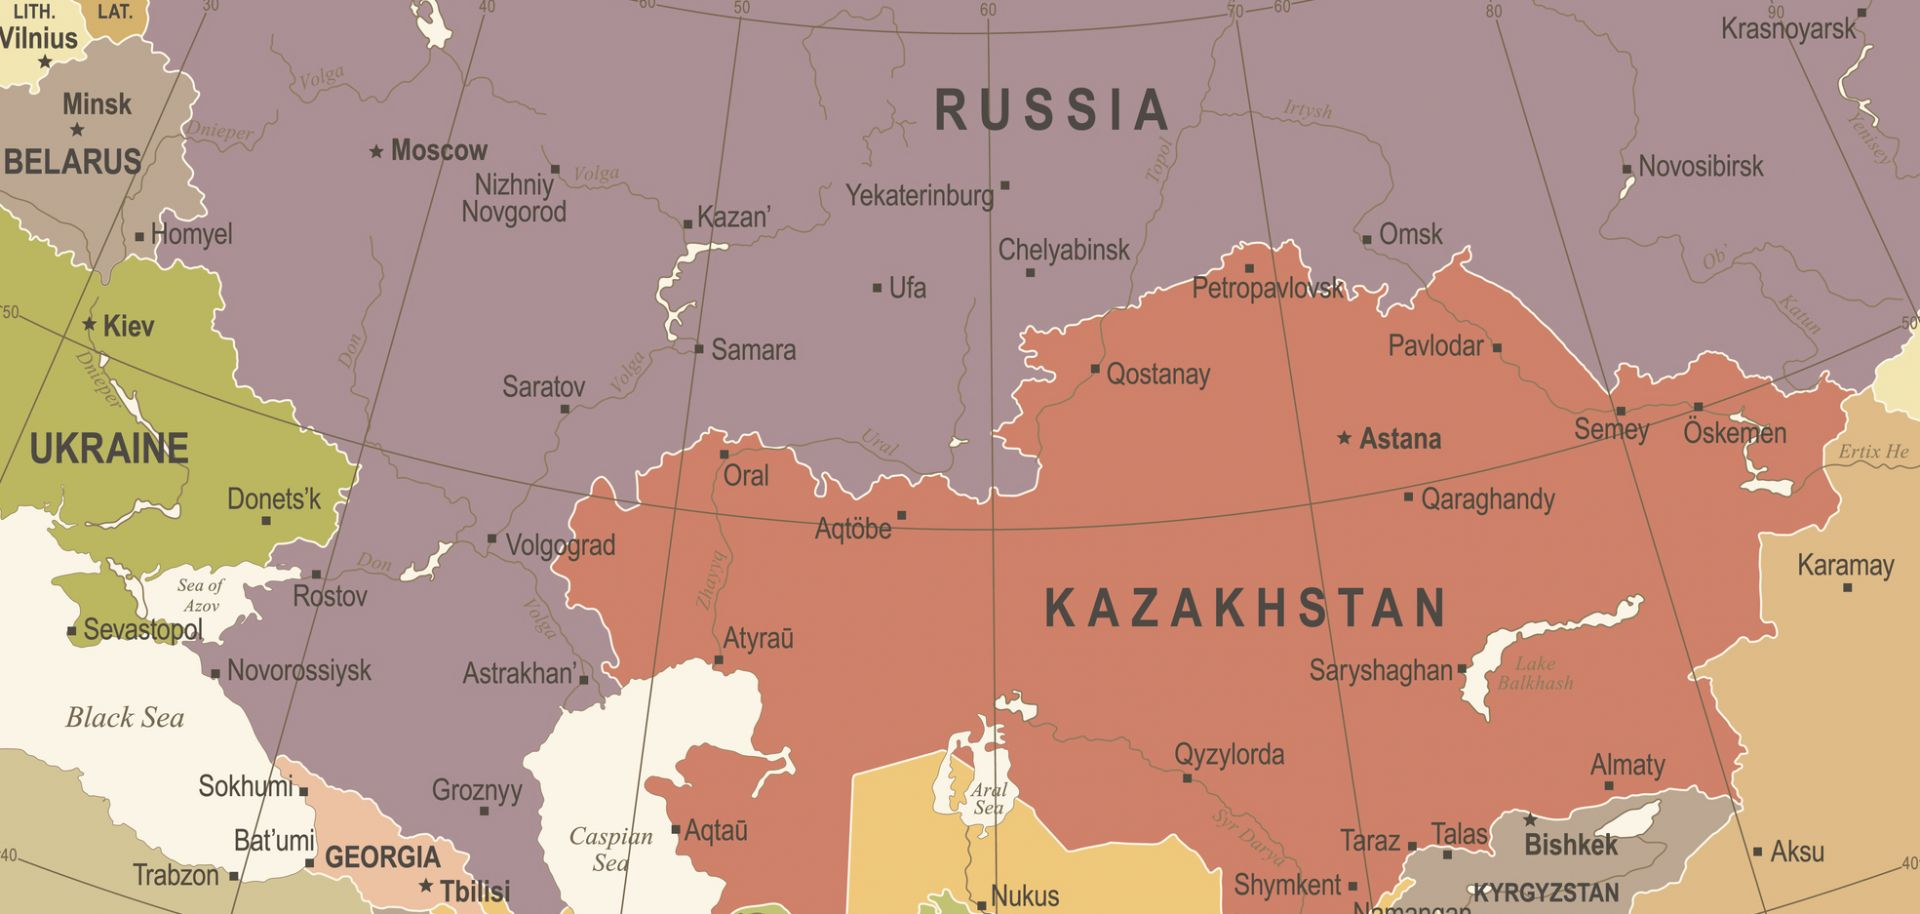 A vintage map shows some of the countries of Eurasia.